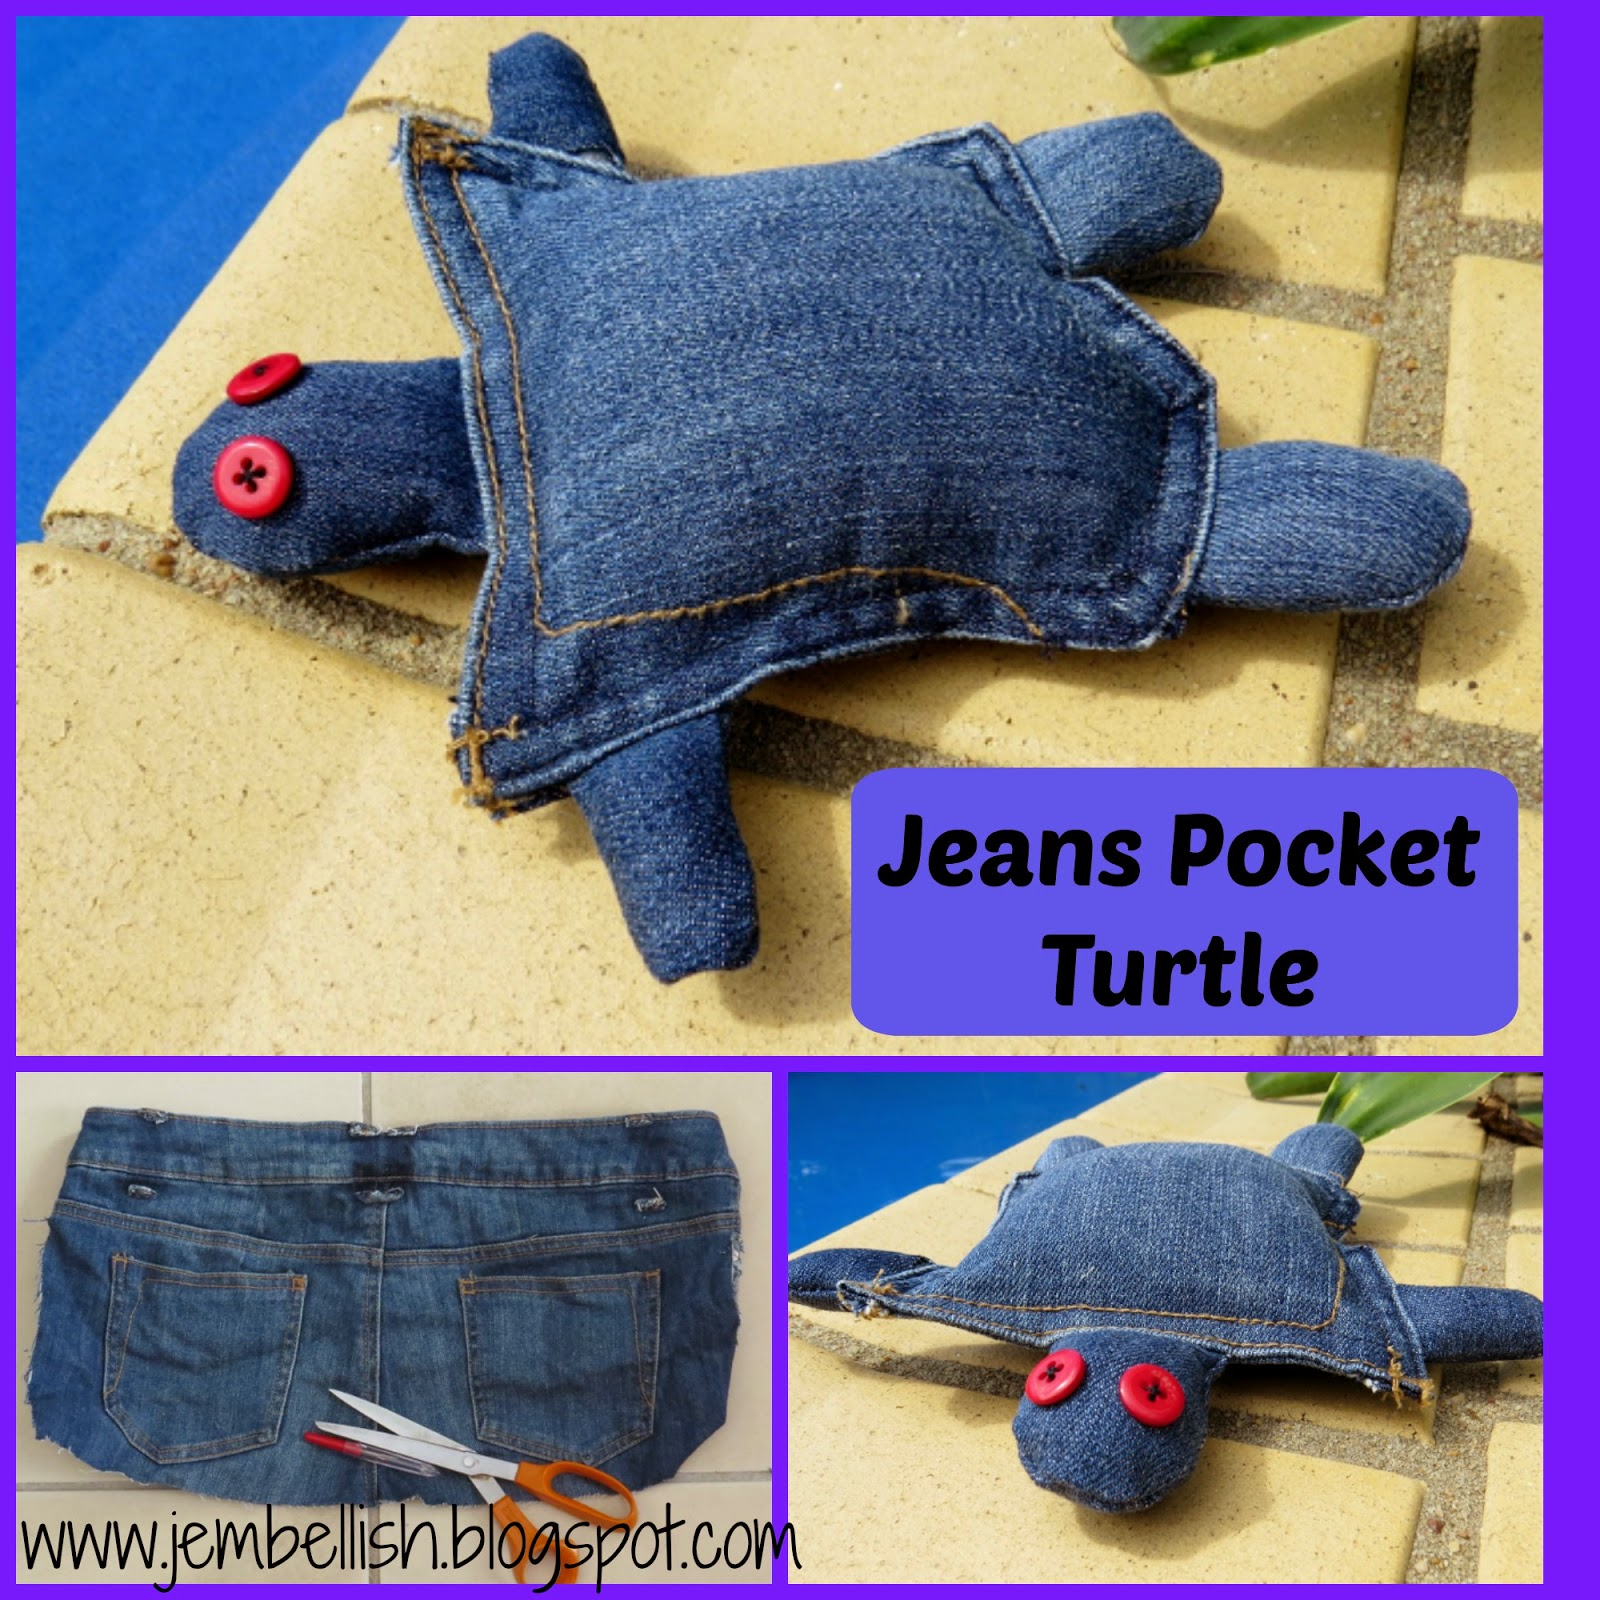 Jeans Pocket Turtle